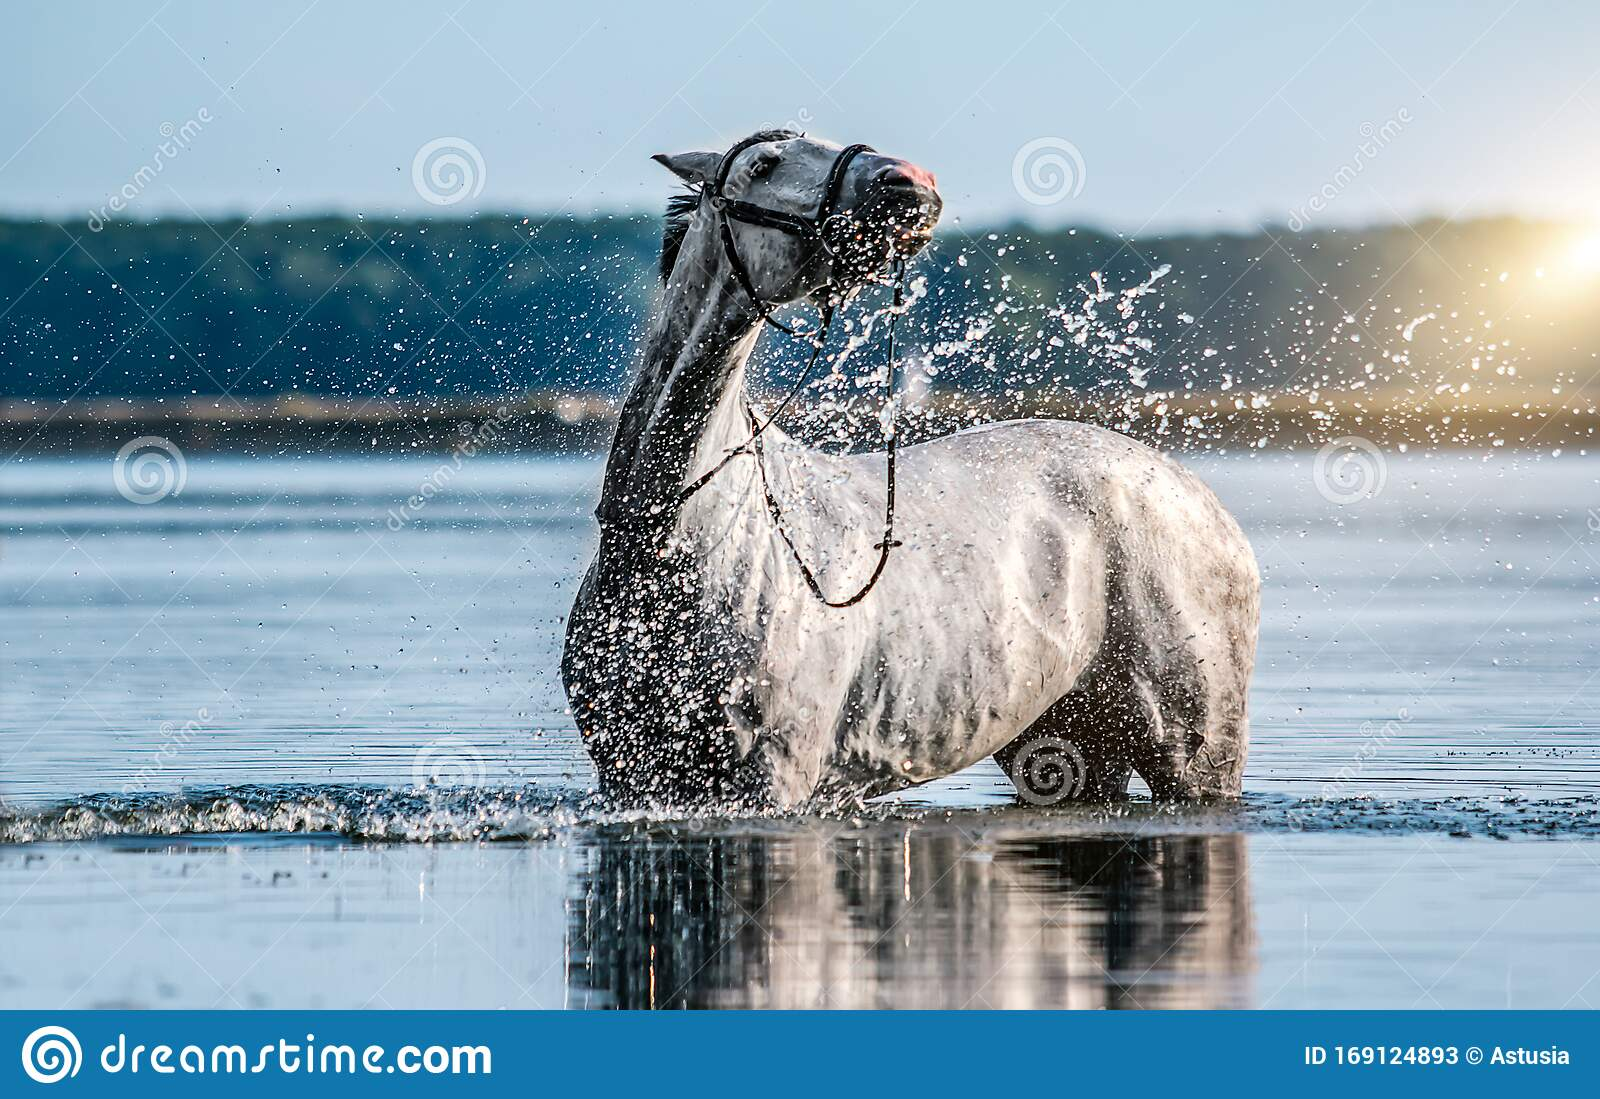 Beautiful White Horse In The Water Stock Image Image Of Power France 169124893